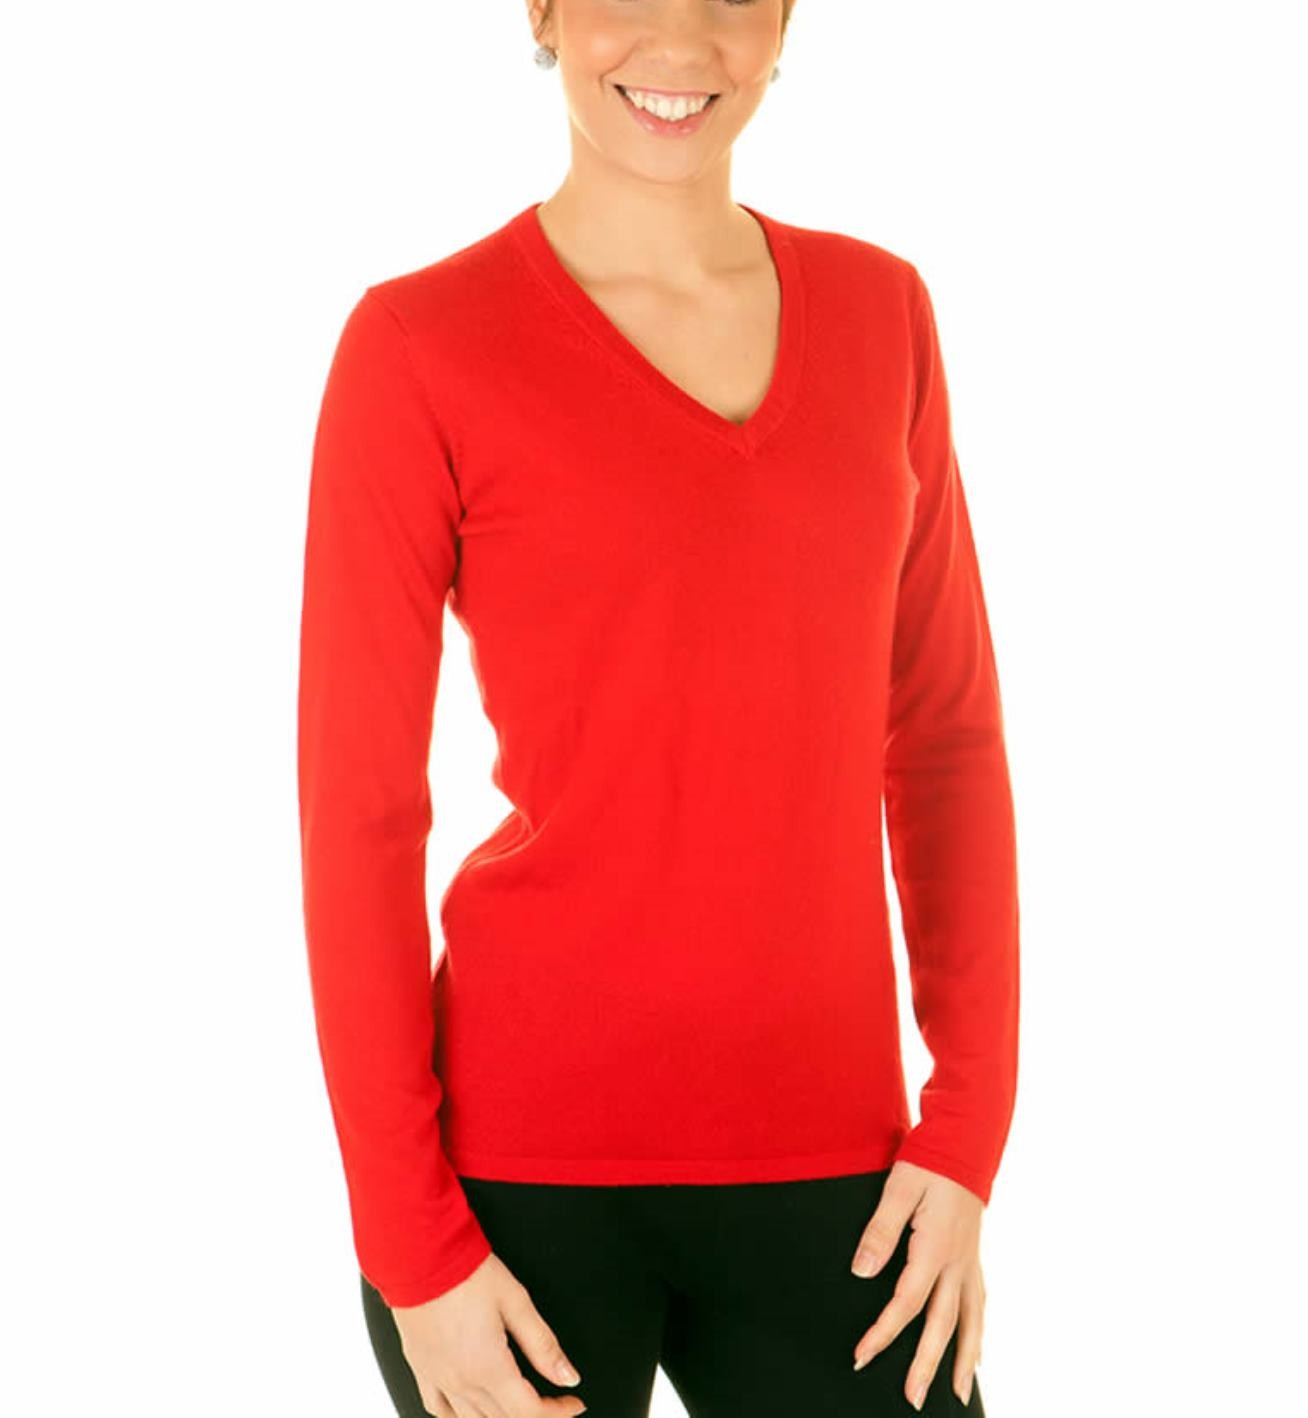 Red Ladies' V-Neck Sweater - 100% Cashmere Made in Scotland